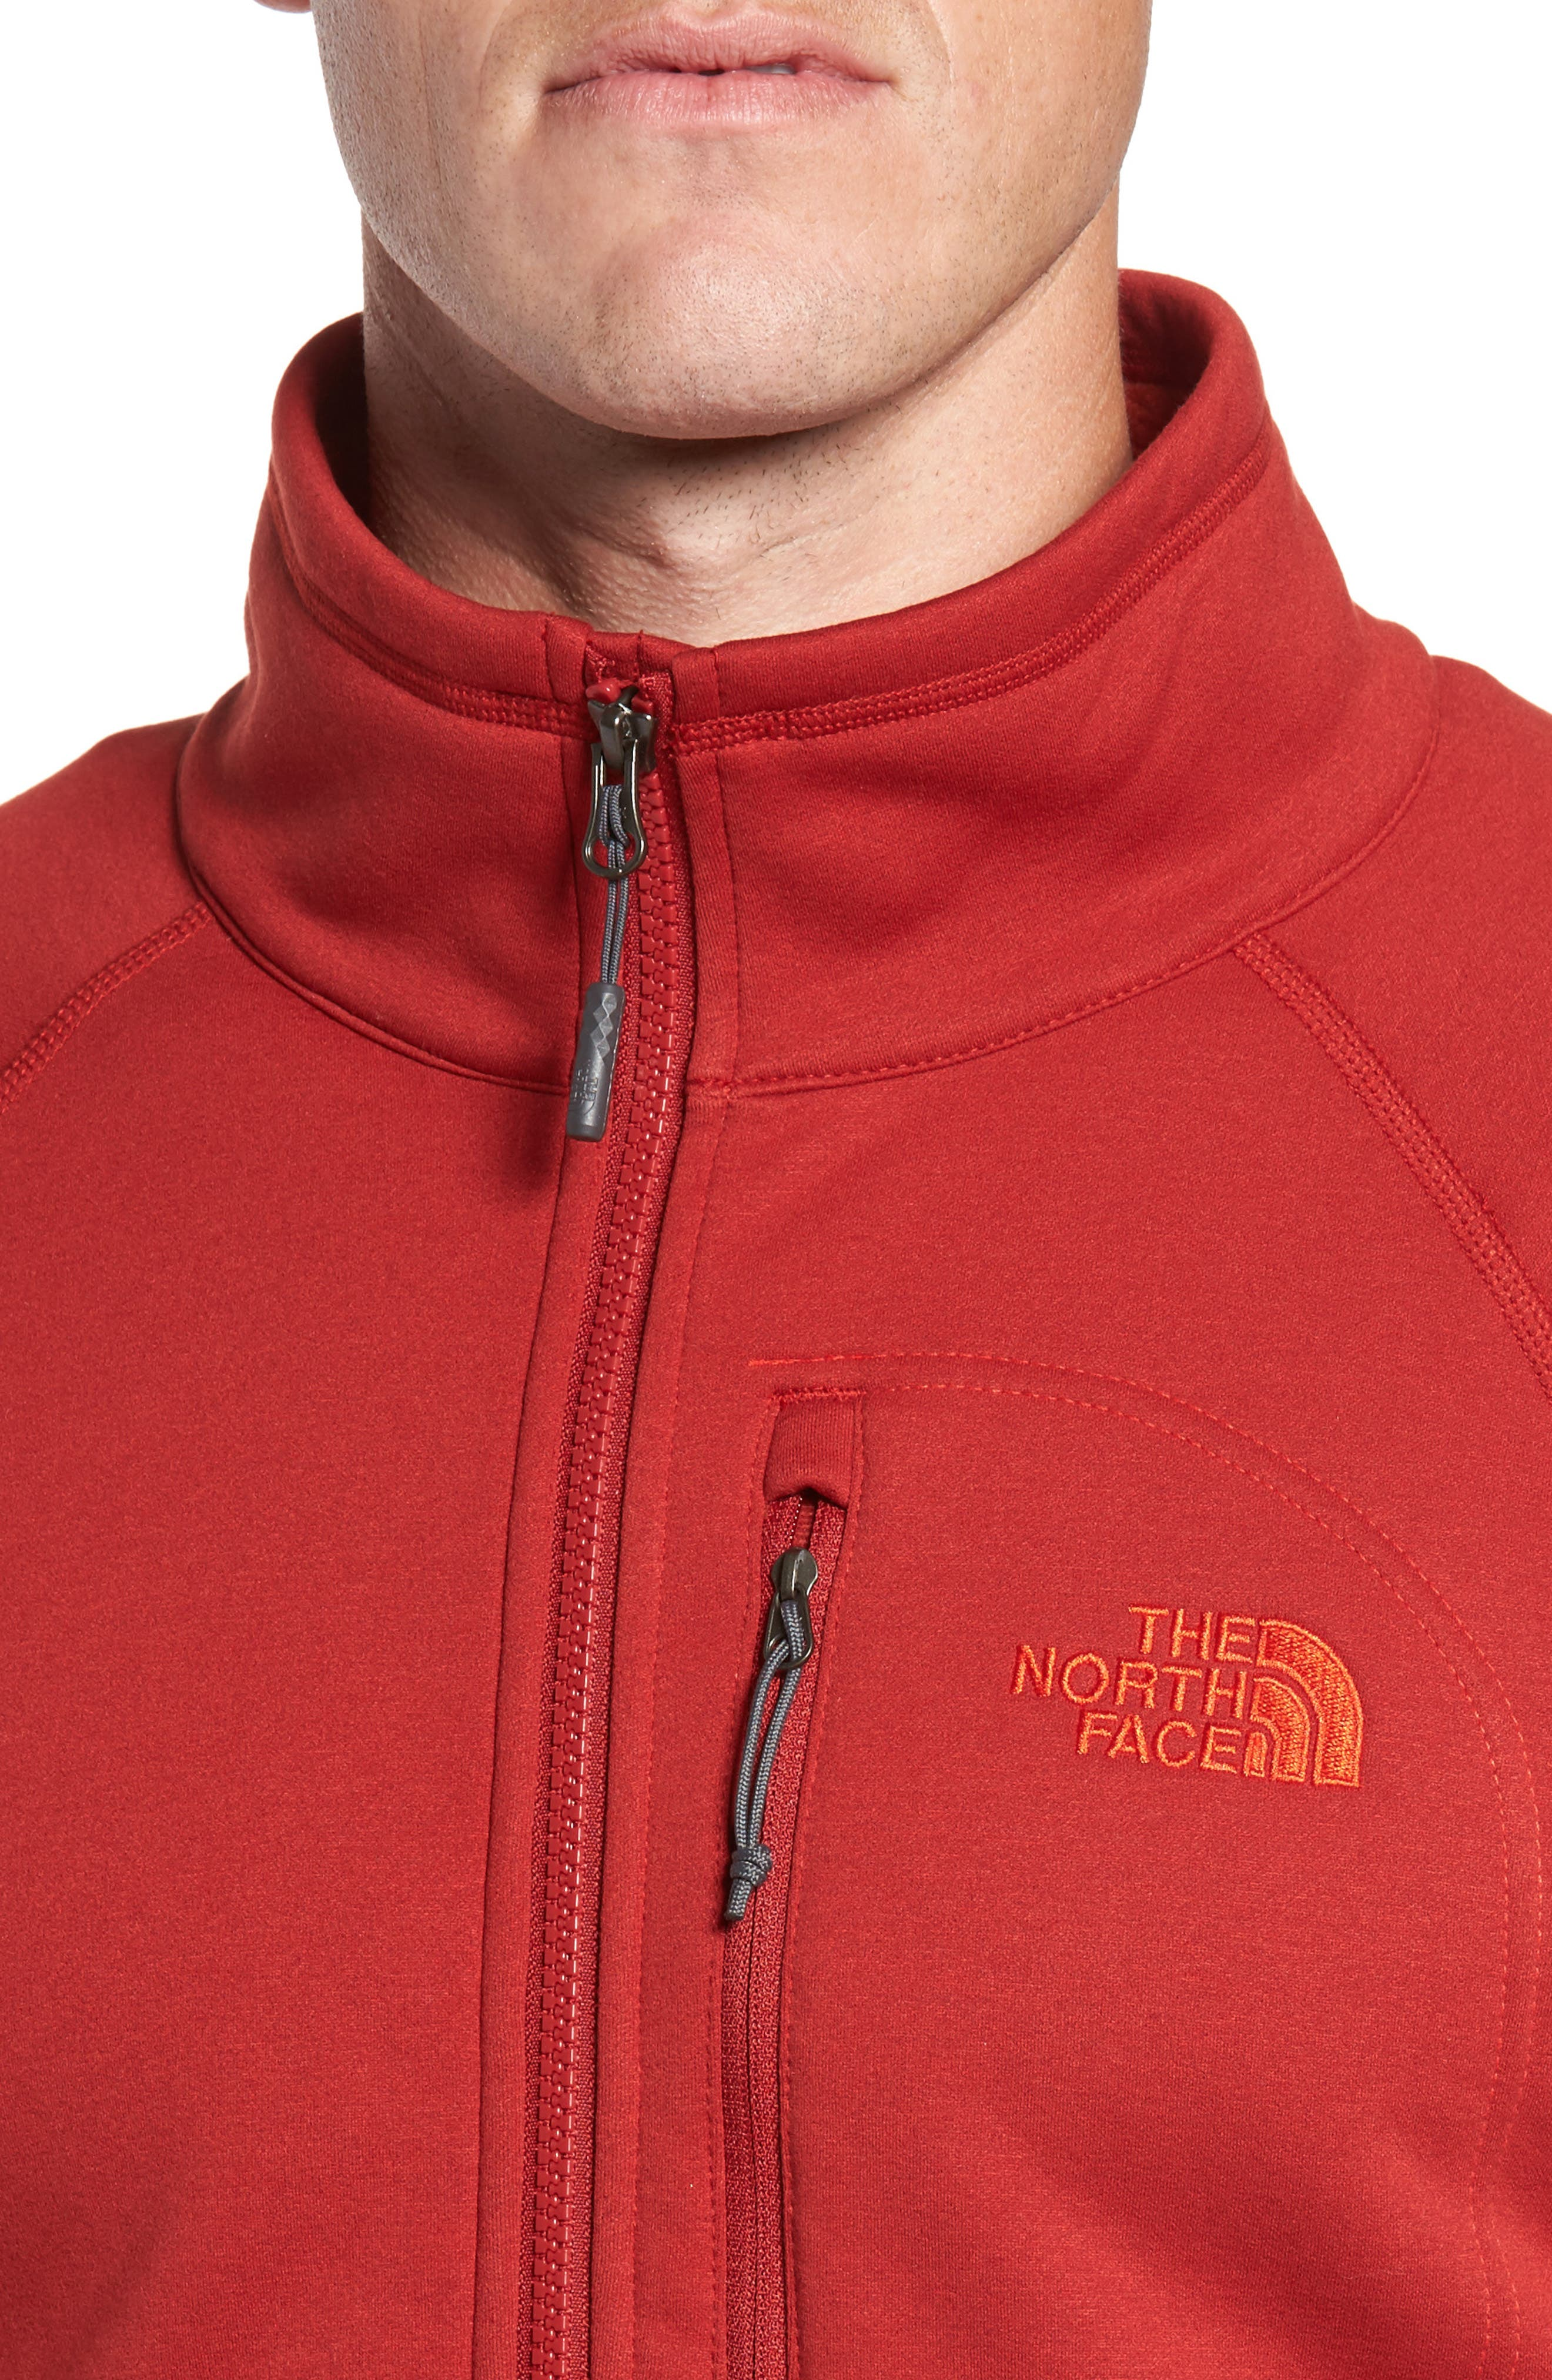 Timber Zip Jacket,                             Alternate thumbnail 12, color,